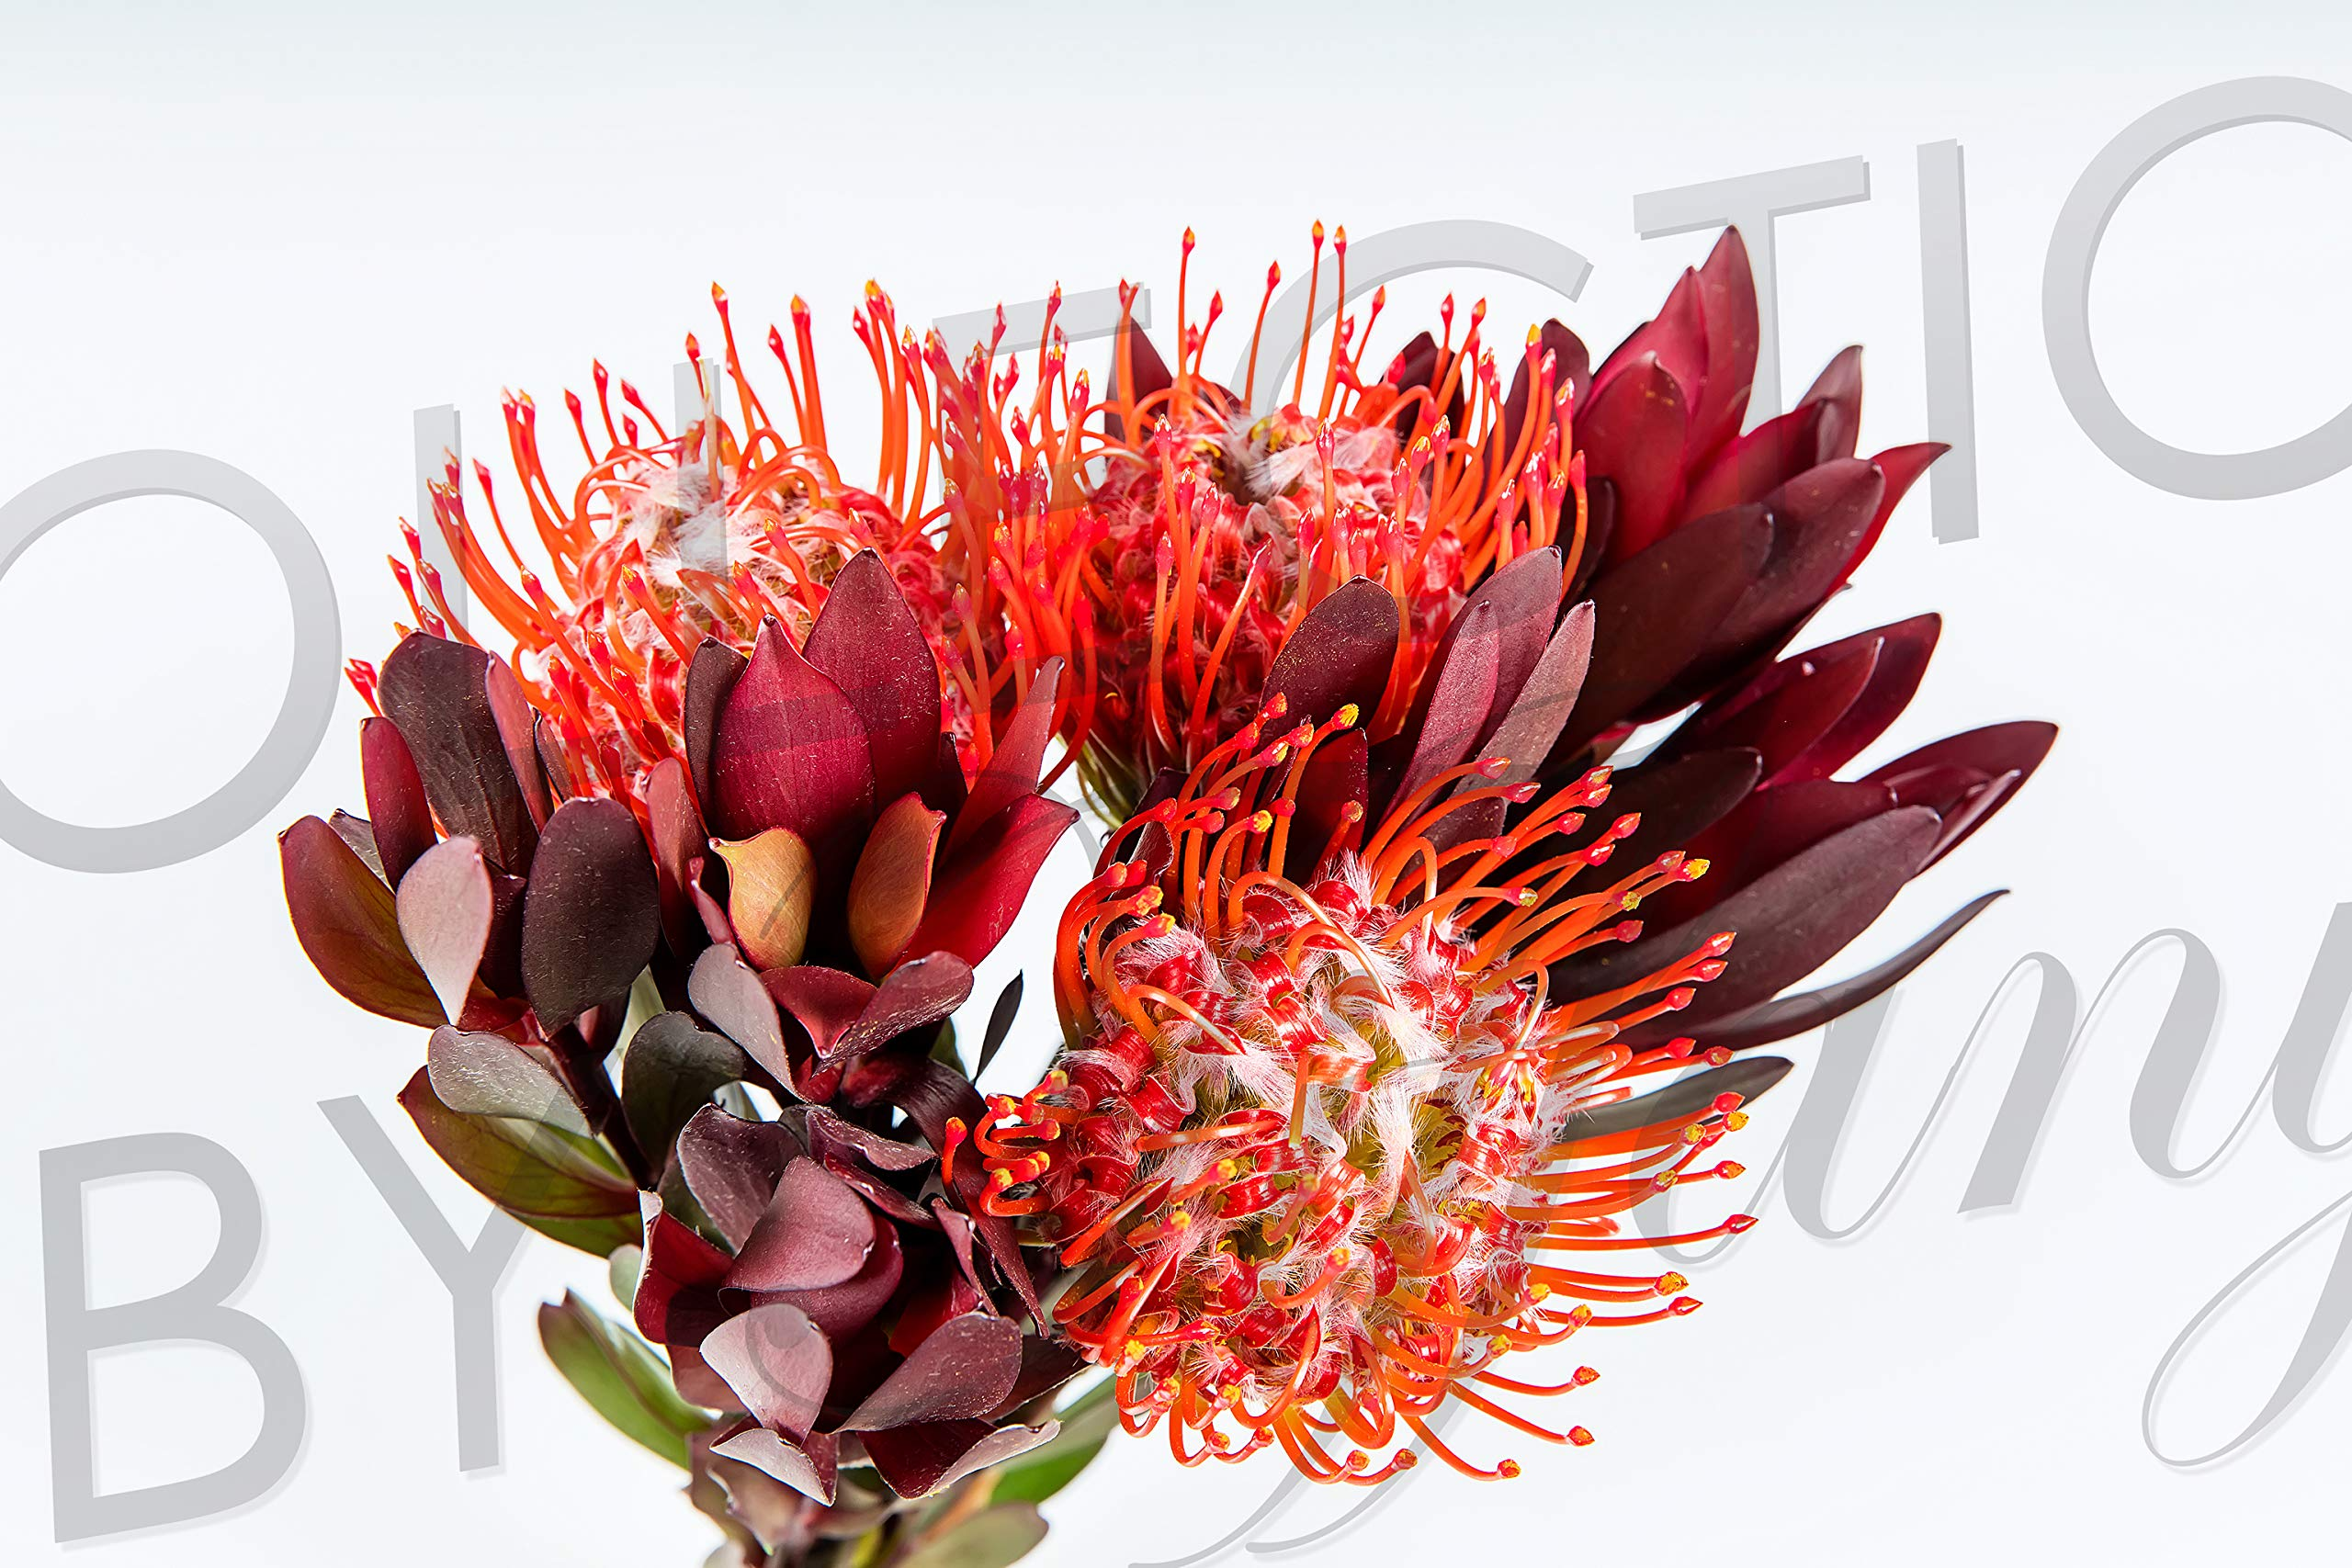 Fresh Protea Bouquet for Garland, Floral Arrangement, Birthday, Anniversary & Funeral Long Lasting, Decoration for Wedding, Event, Everyday, Occasion Gift. by Collection by Tiffany